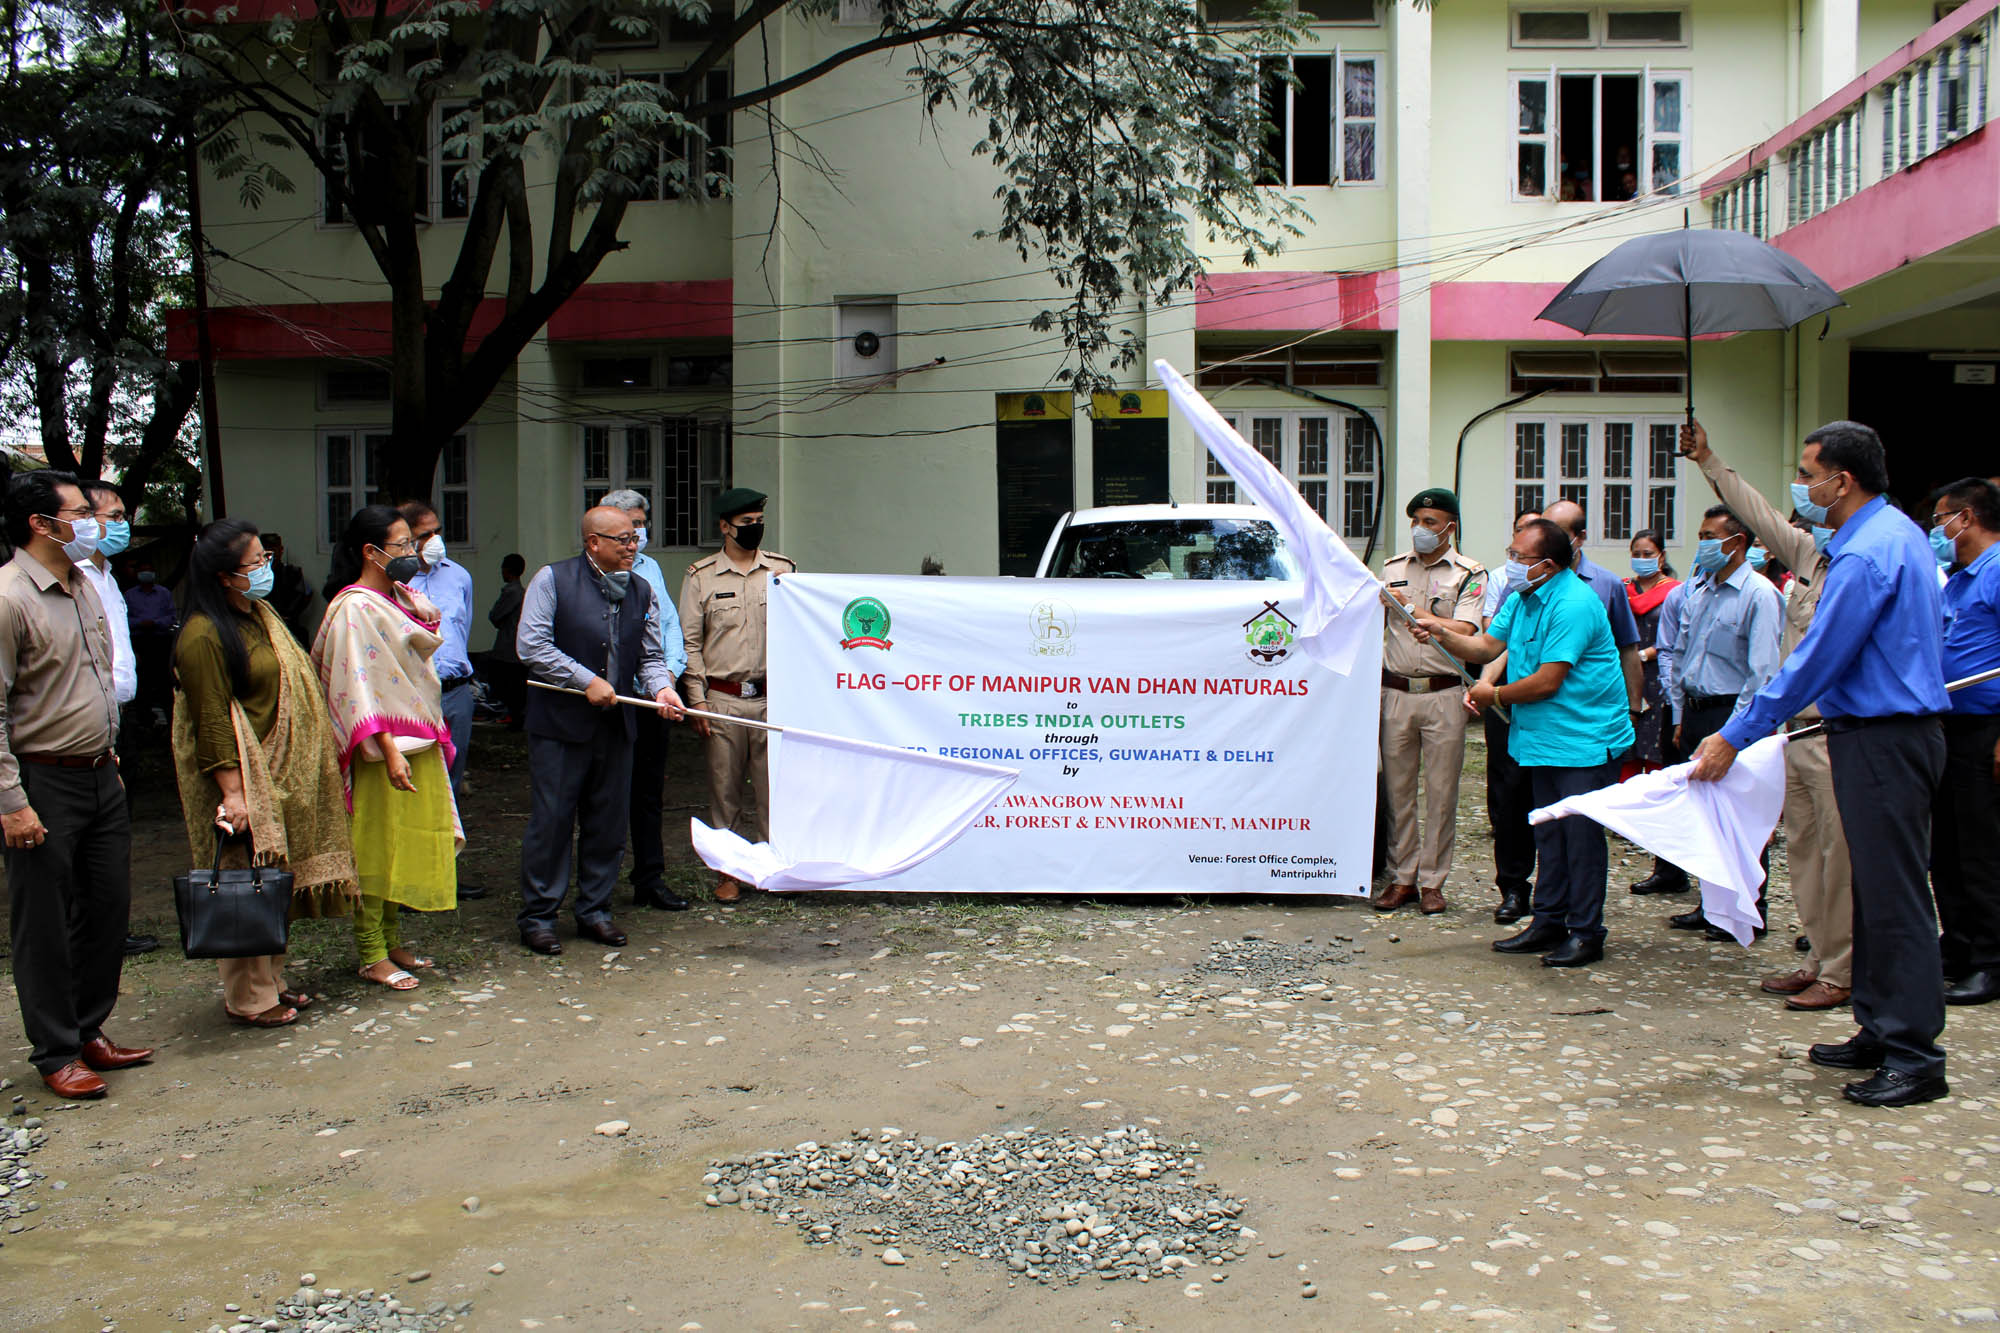 Forest Minister flags off Manipur Van Dhan Naturals to Tribes India